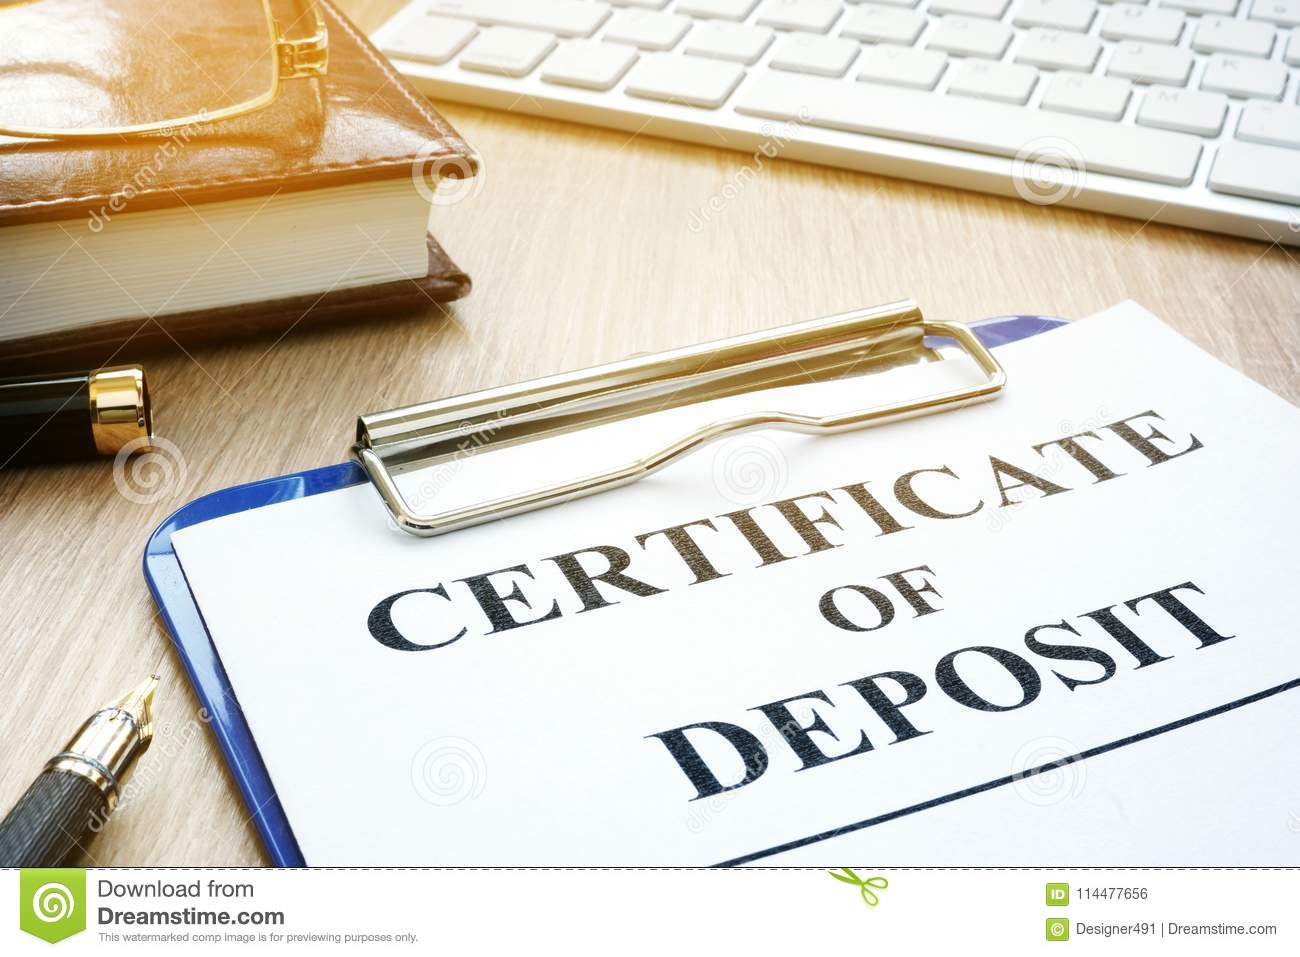 Certificate Of Deposit On A Desk Stock Photo Image Of